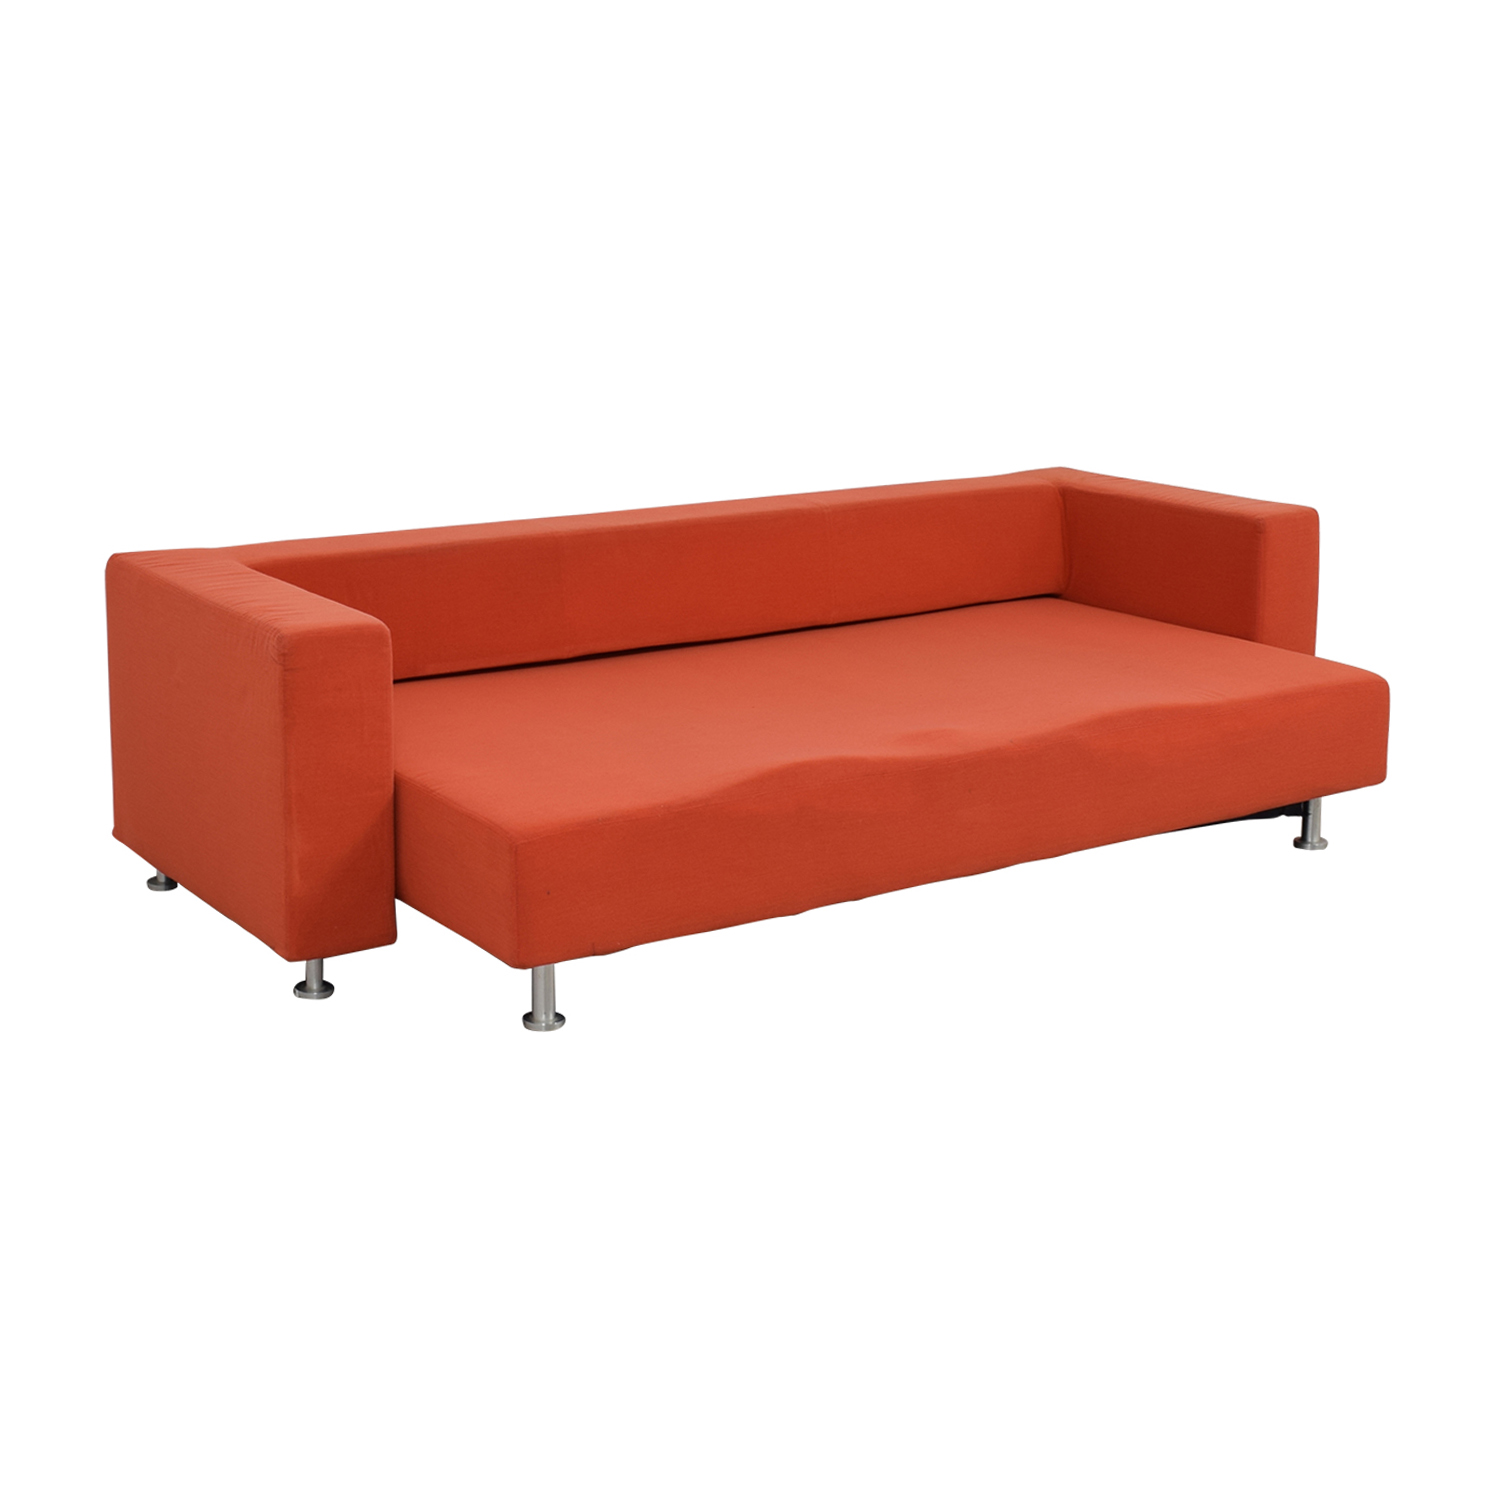 Ligne Roset Ligne Roset Orange Sleeper Sofa for sale